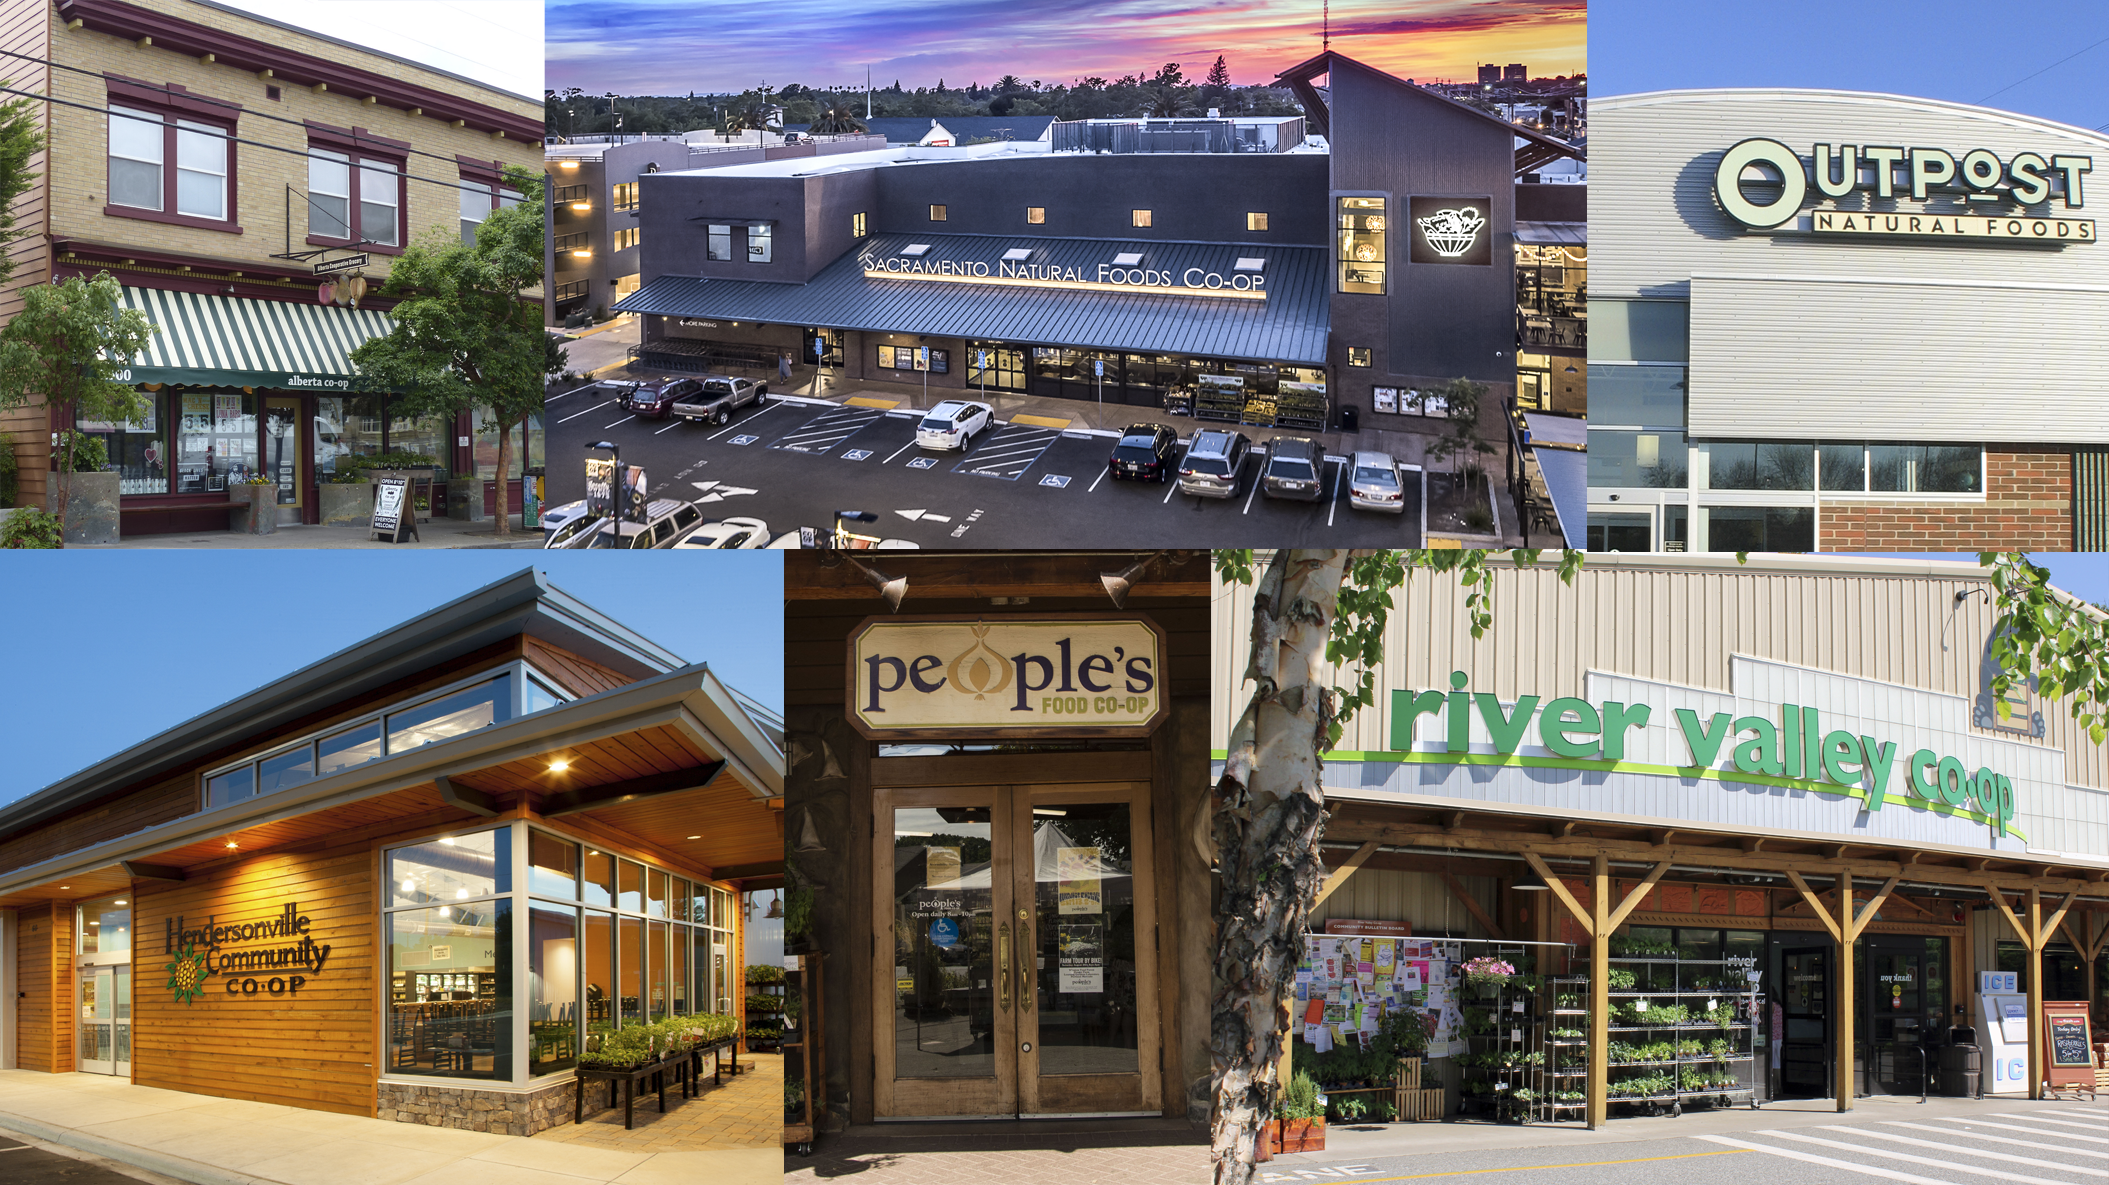 Food Co-op Directory — Grocery Story: The Promise of Food Co